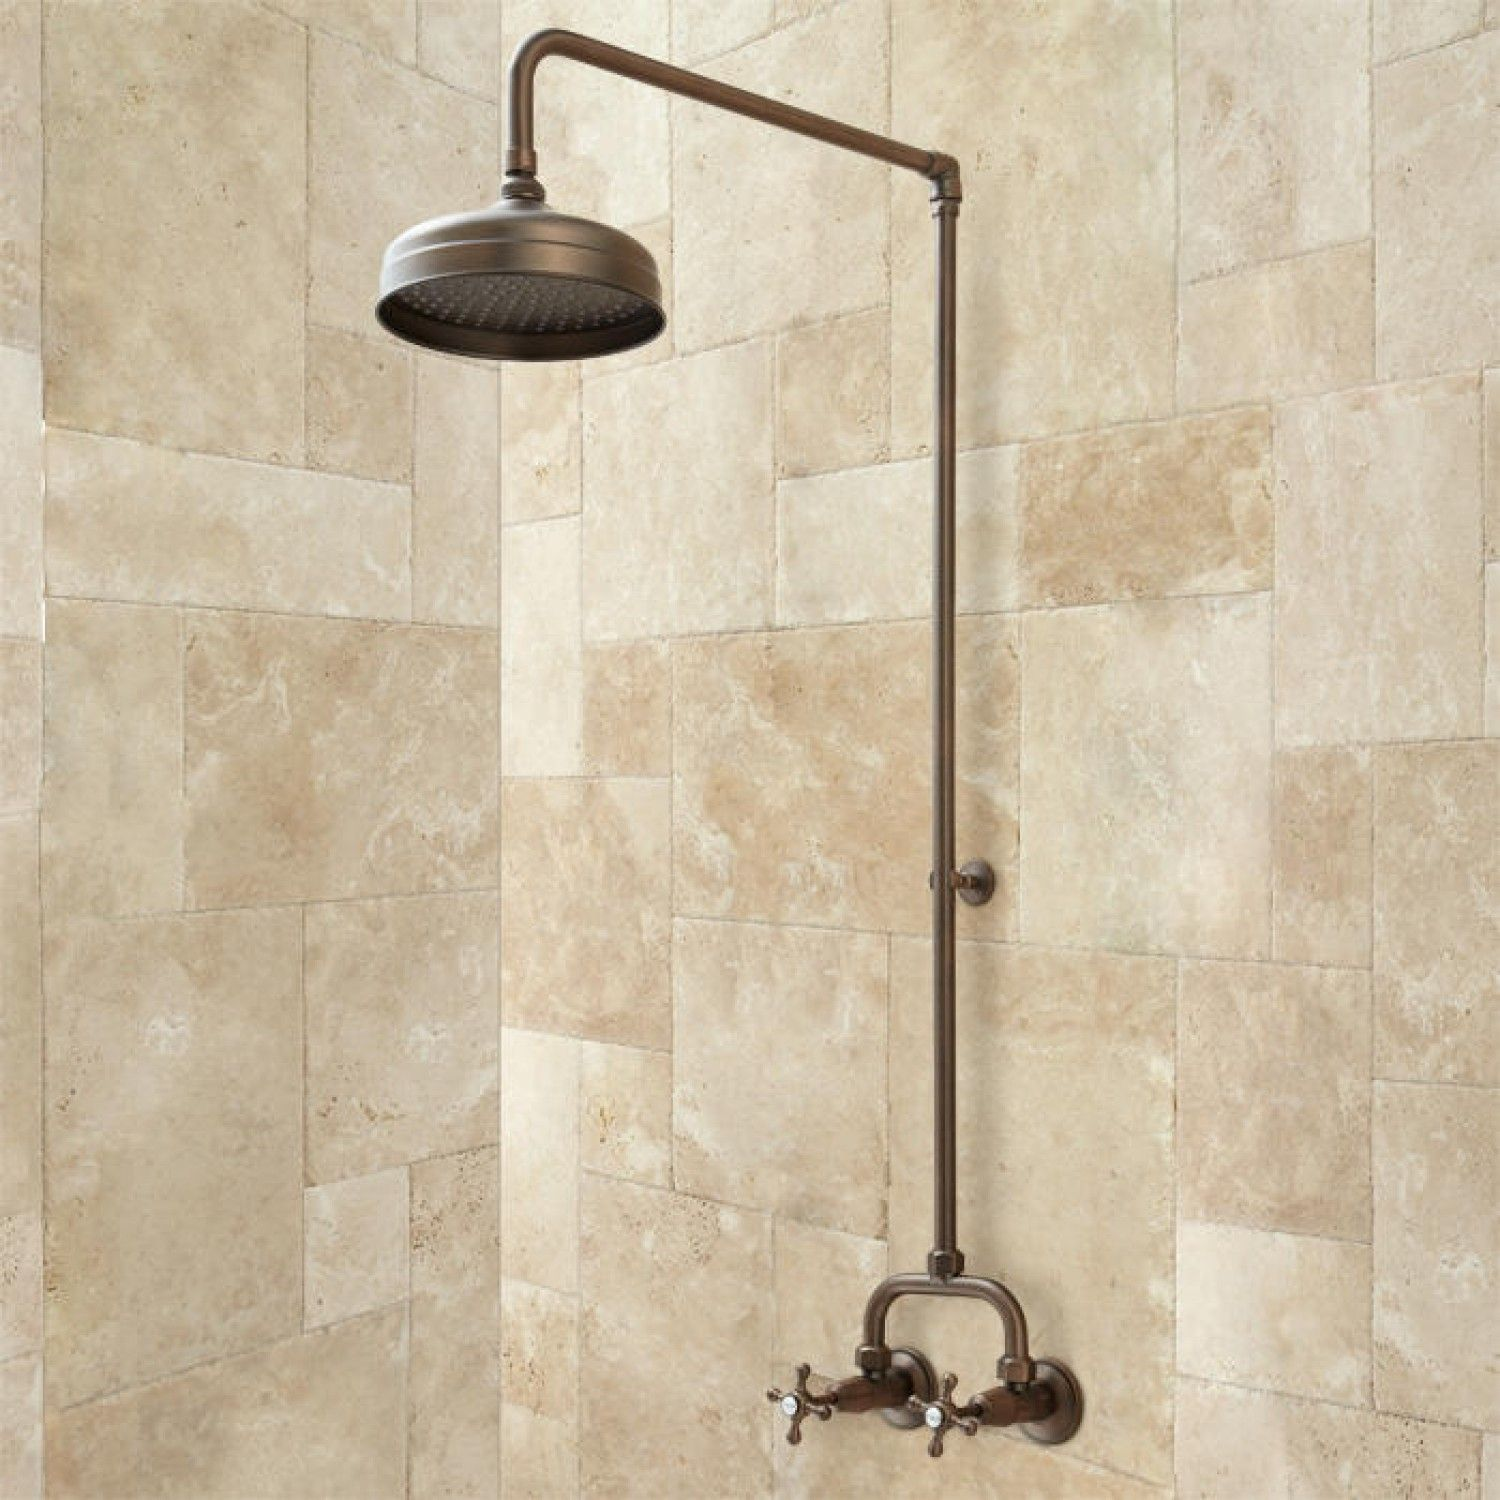 Baudette Exposed Pipe Wall Mount Shower With Rainfall Shower Head   Bathroom